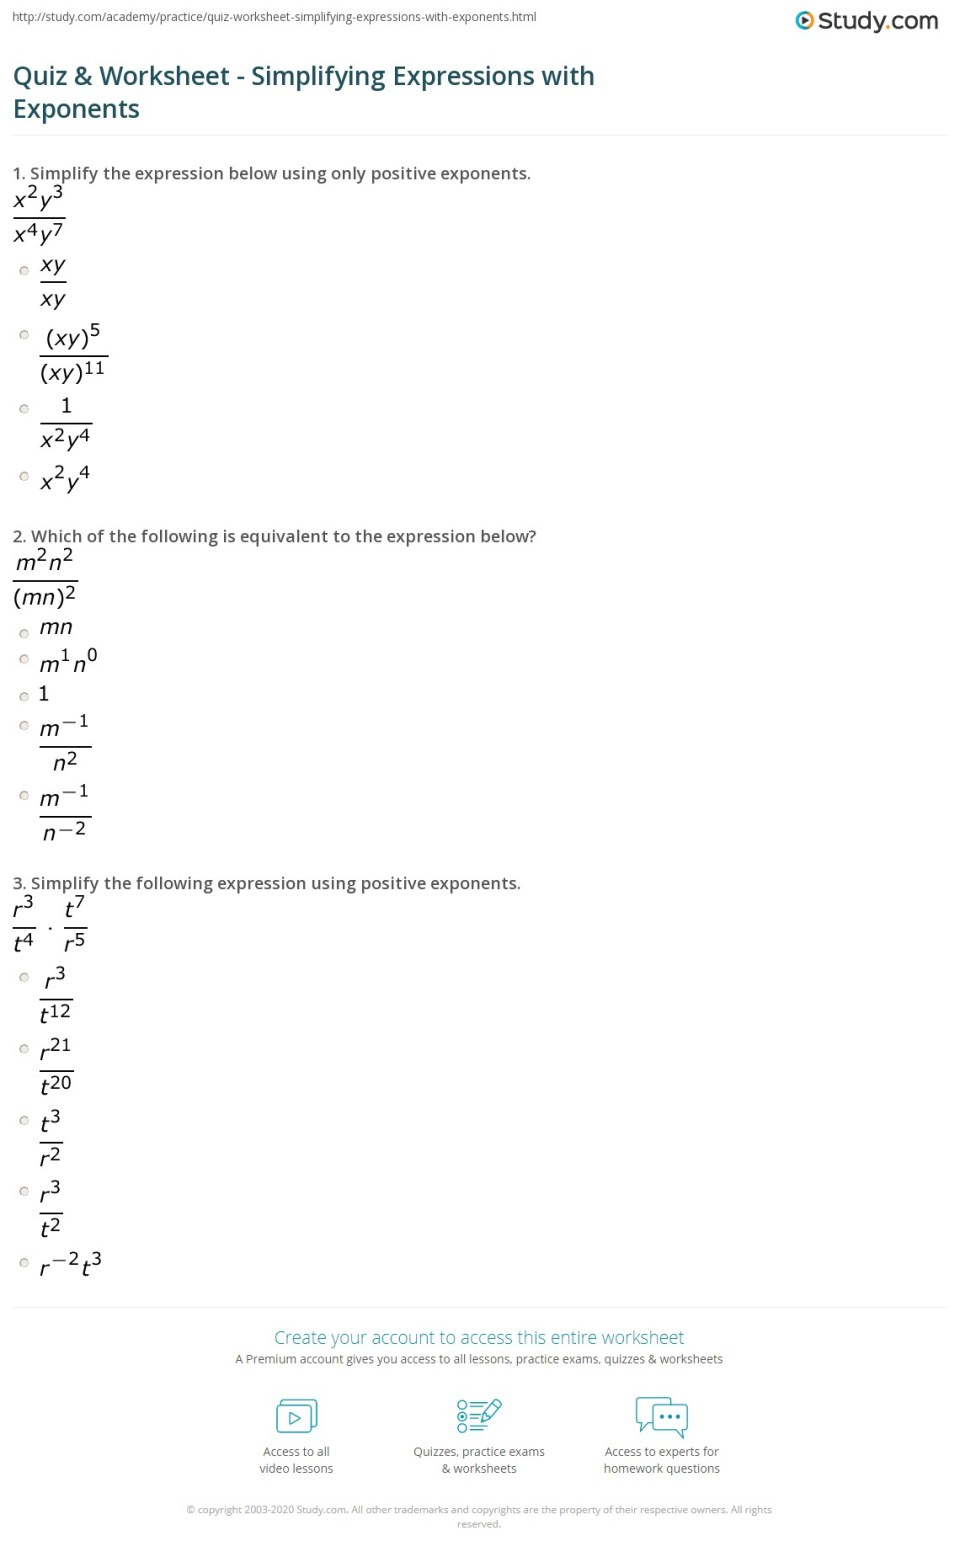 Quiz Worksheet Simplifying Expressions With Exponents